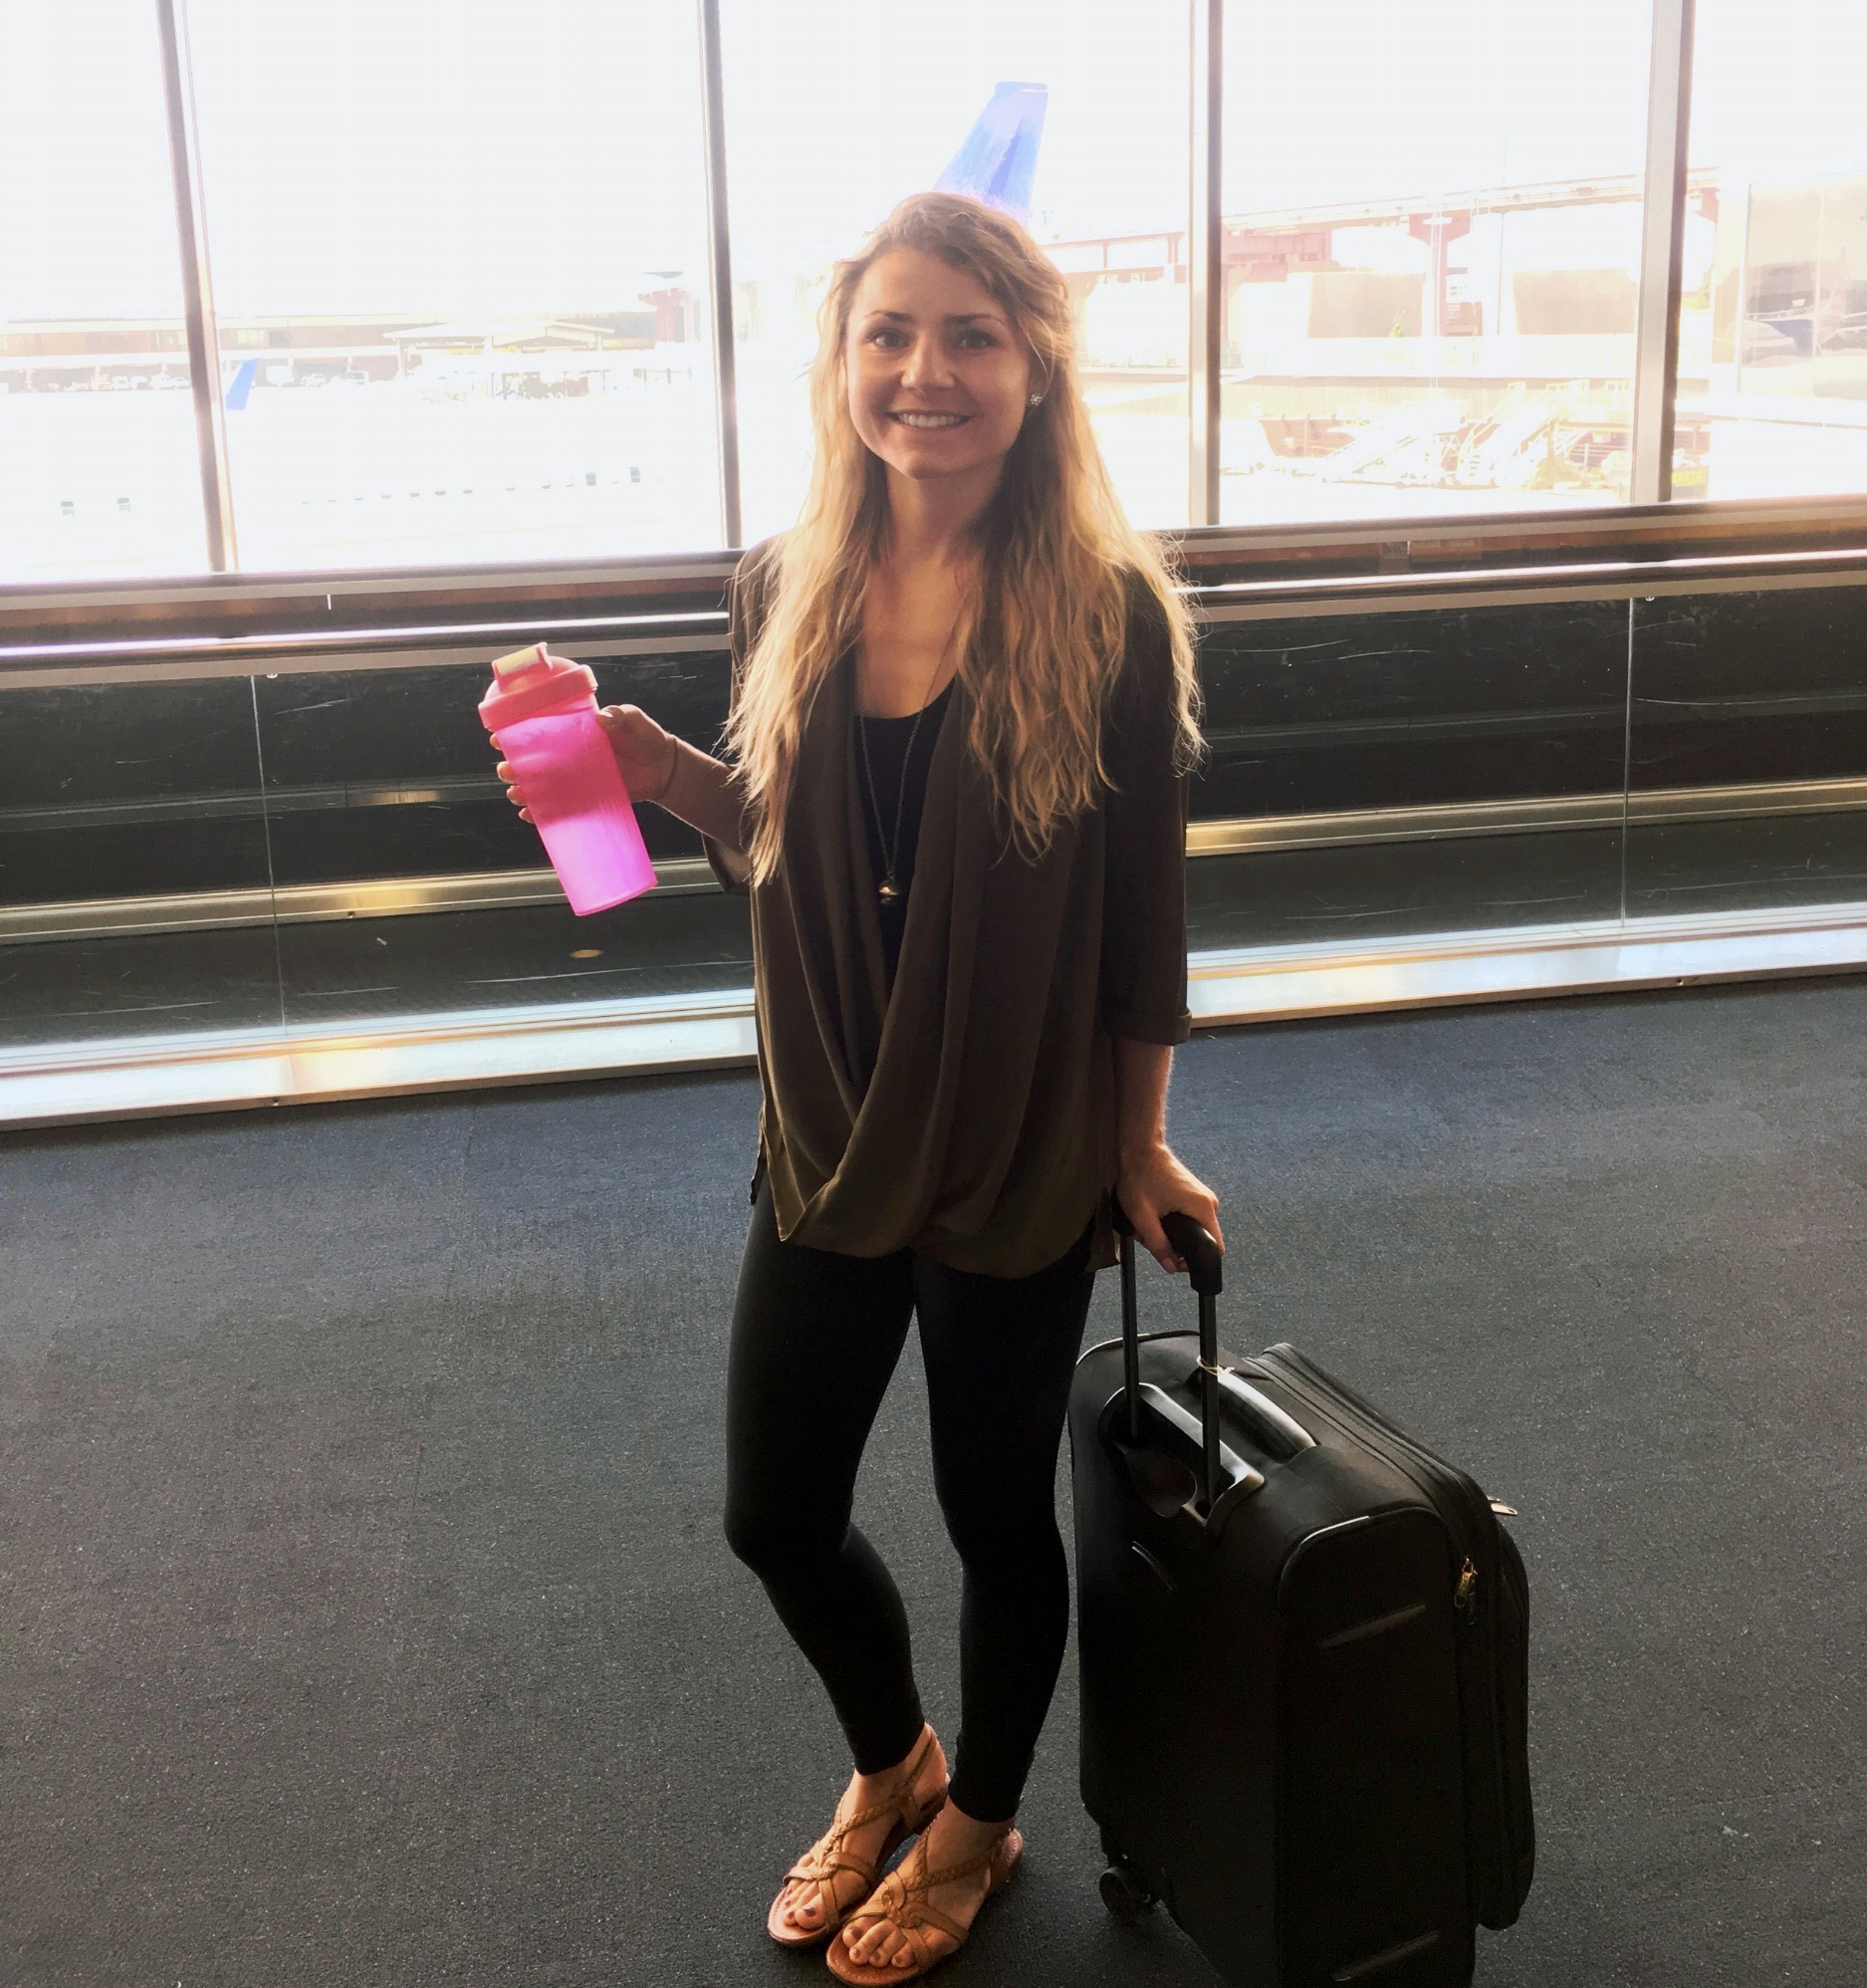 Travel Tips: Hydrate and Comfy Clothes